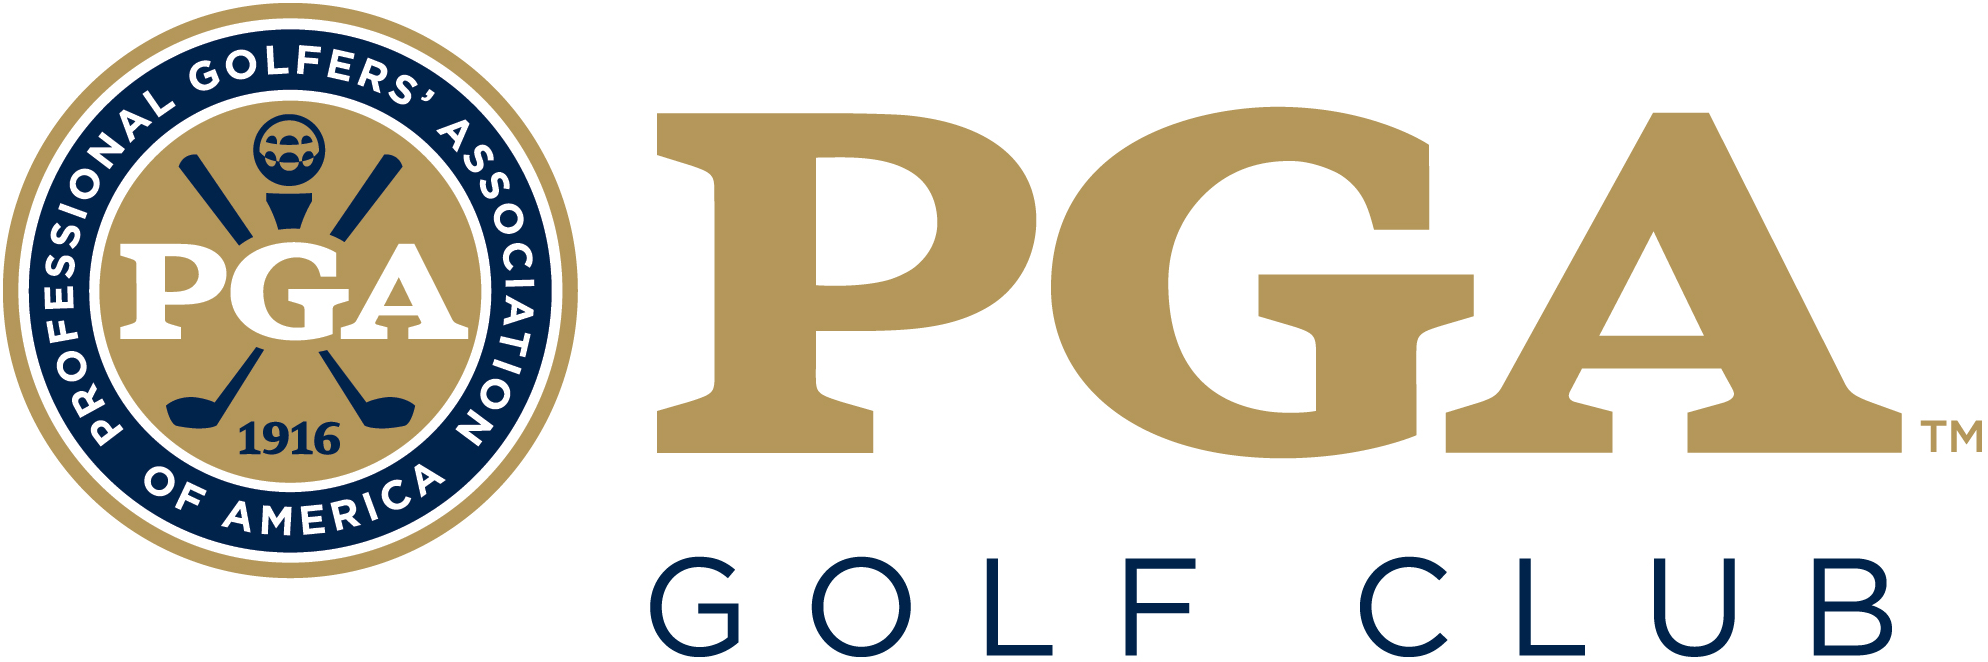 Juniors - PGA | Center for Golf Learning & Performance